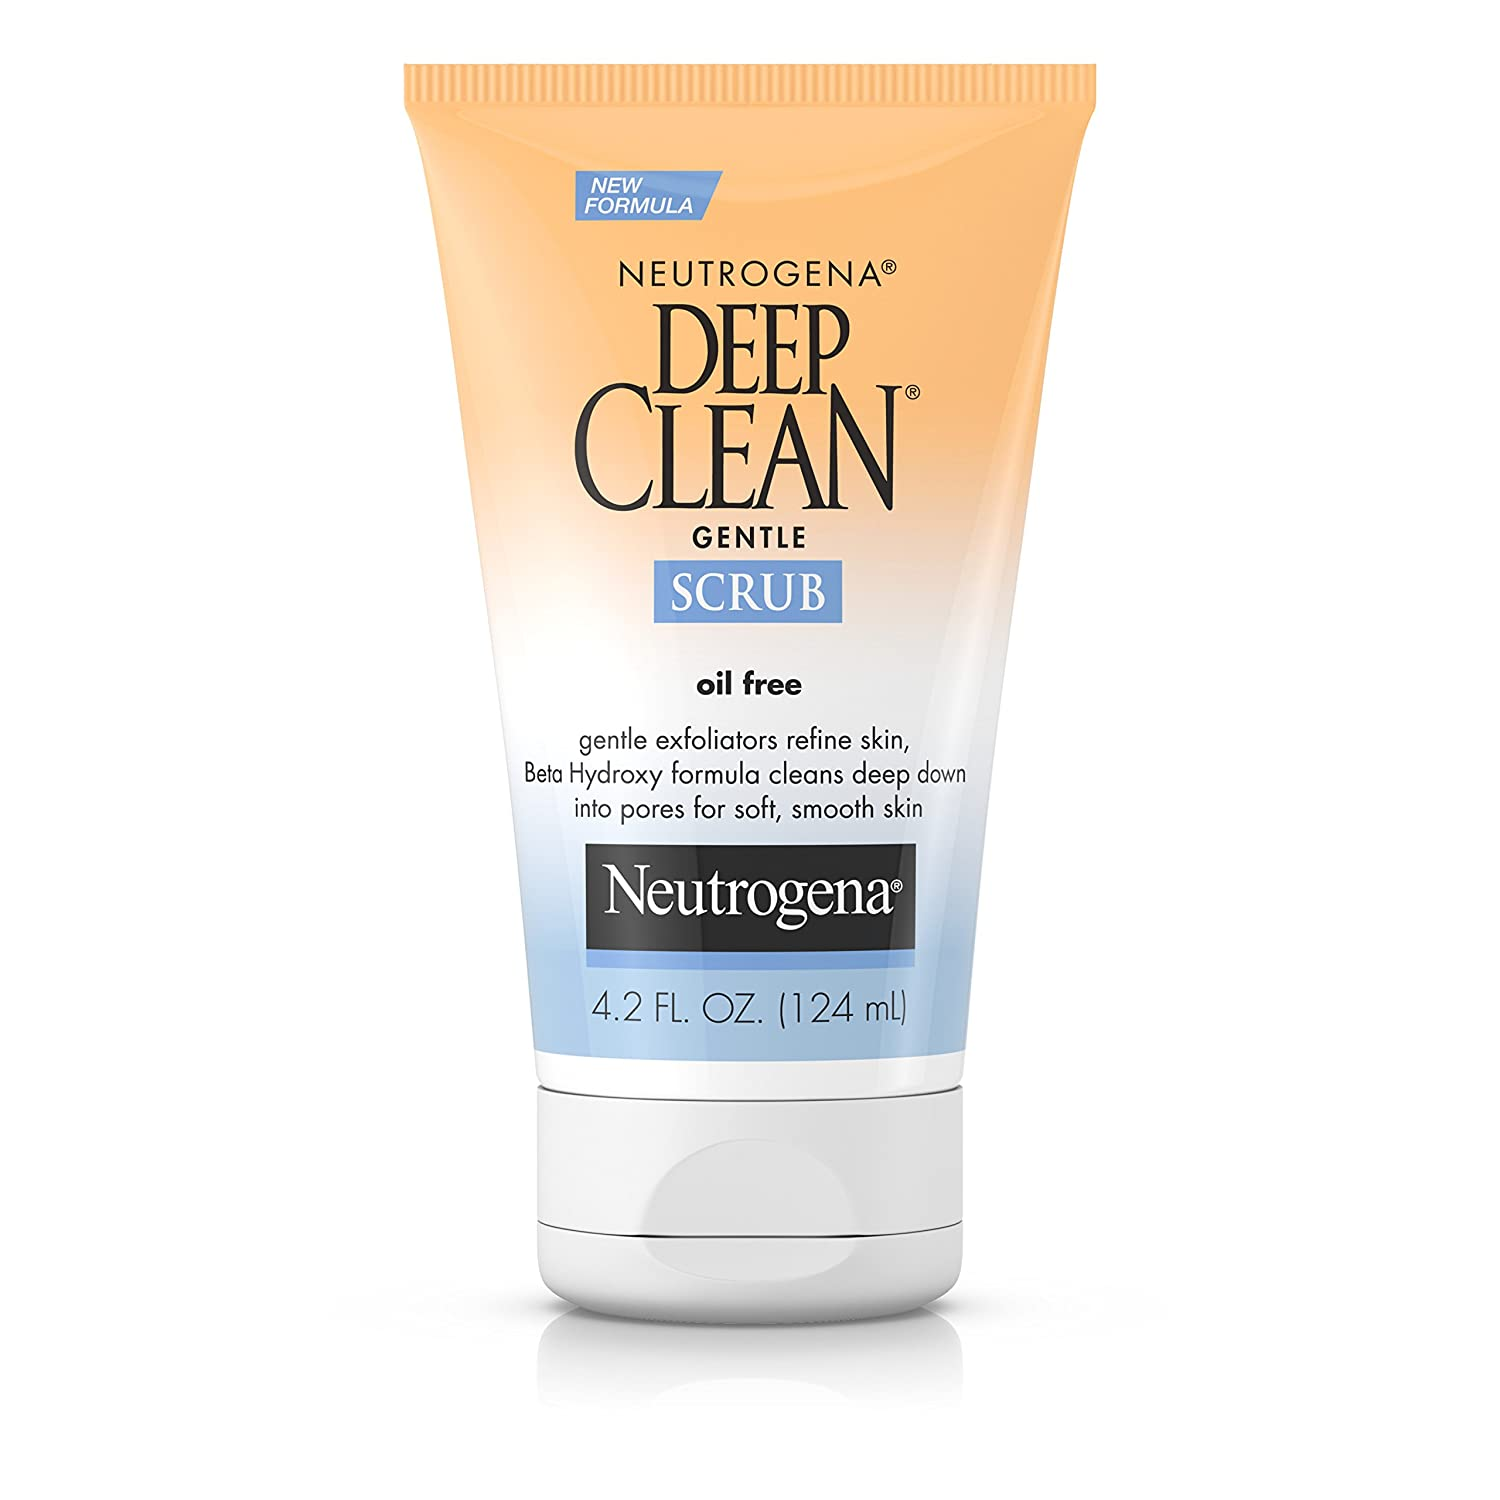 Neutrogena Deep Clean Gentle Daily Facial Scrub, Oil Free Cleanser, 4.2 Fl. Oz by Neutrogena